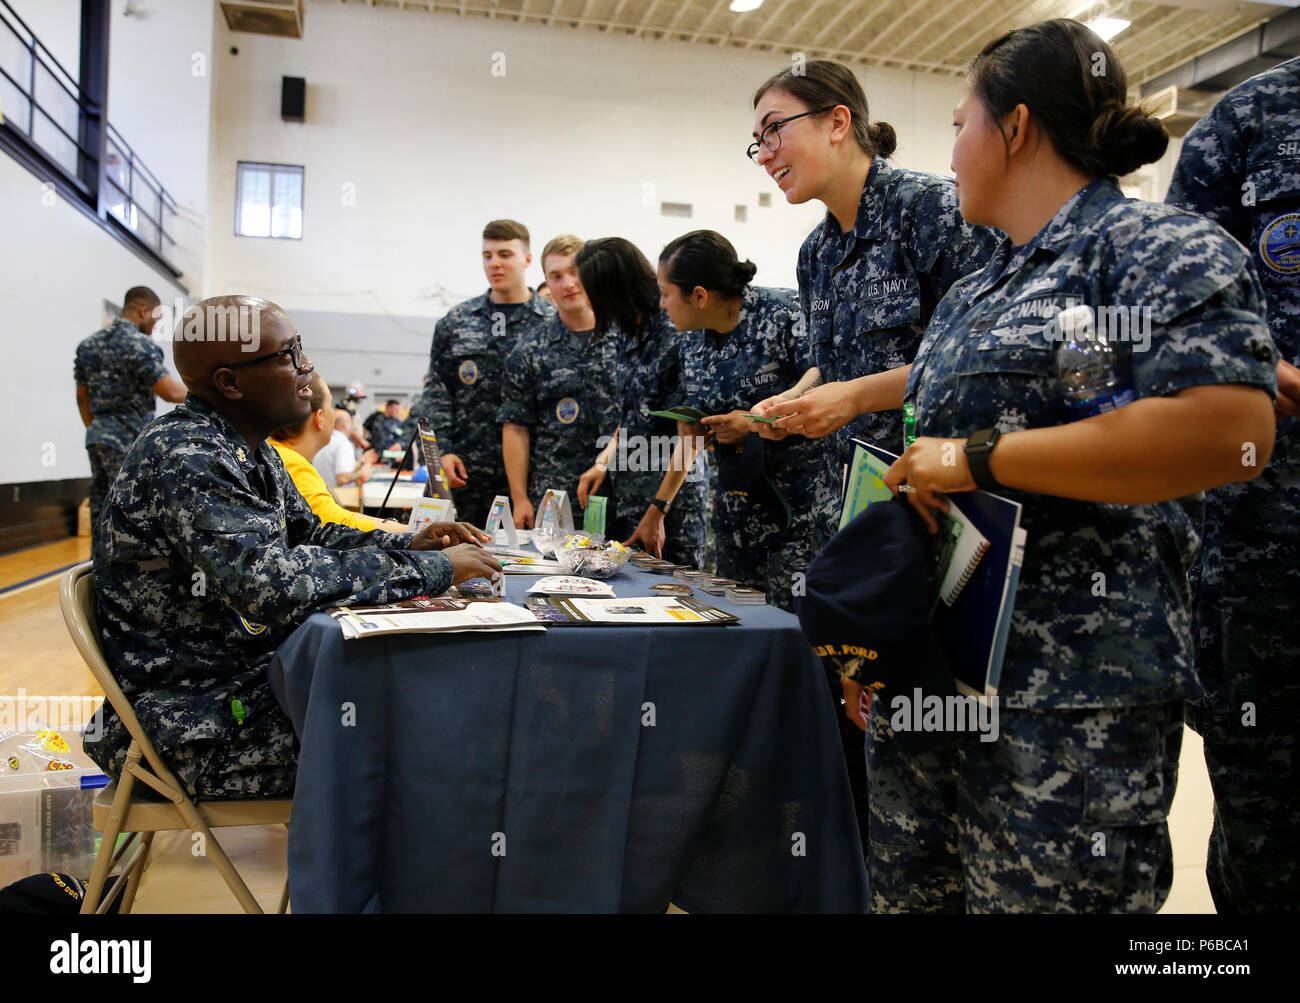 NEWPORT NEWS, Va. (May 26, 2016) --  Sailors assigned to Pre-Commissioning Unit Gerald R. Ford (CVN 78) take pamphlets of safe drinking habits apart of the 'Keep What You've Earned' campaign during Ford's Summer Safety Expo at Huntington Hall. The expo coincided with Navy Safety Center's 101 Critical Days of Summer campaign, which raises awareness of possible off-duty mishaps during the summer months. (U.S. Navy photo by Mass Communication Specialist Seaman Apprentice Gitte Schirrmacher/Released) - Stock Image